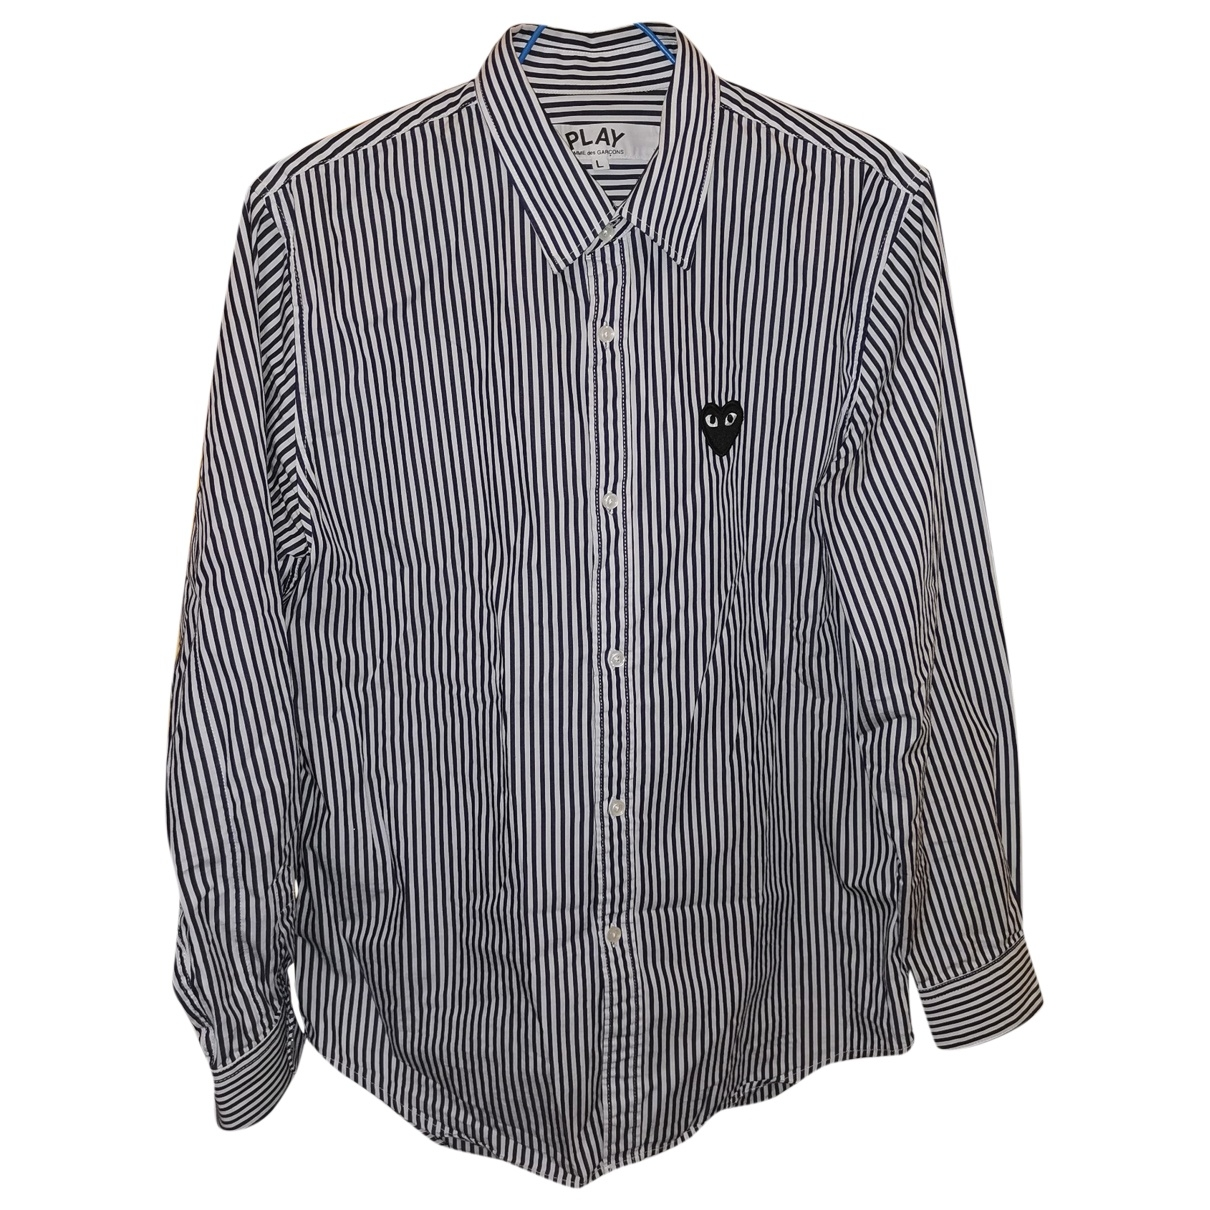 Camisas Play Comme Des Garcons